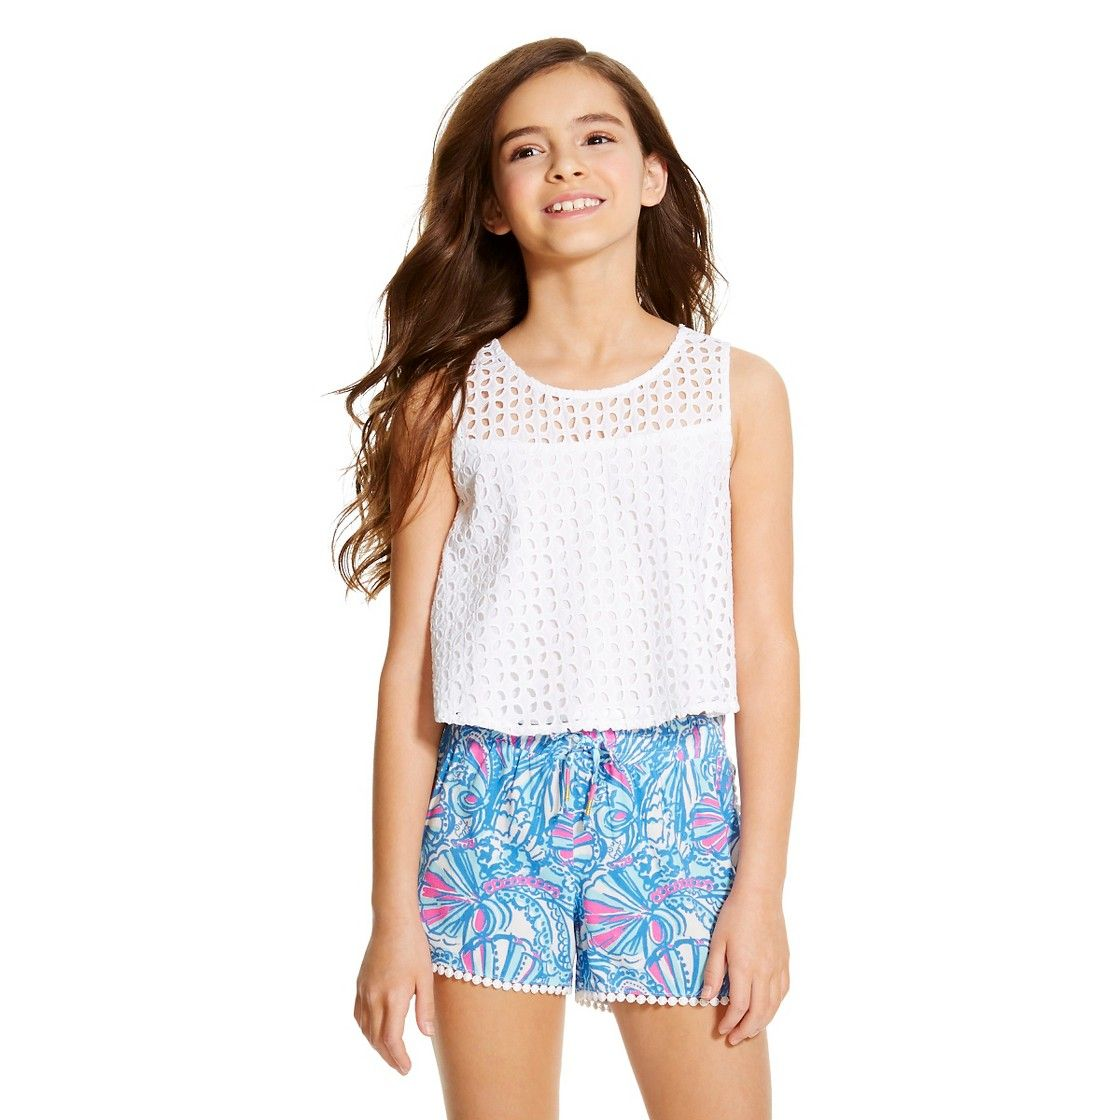 4b96b7df42ce Lilly Pulitzer for Target Girls  Eyelet Tank Top - White